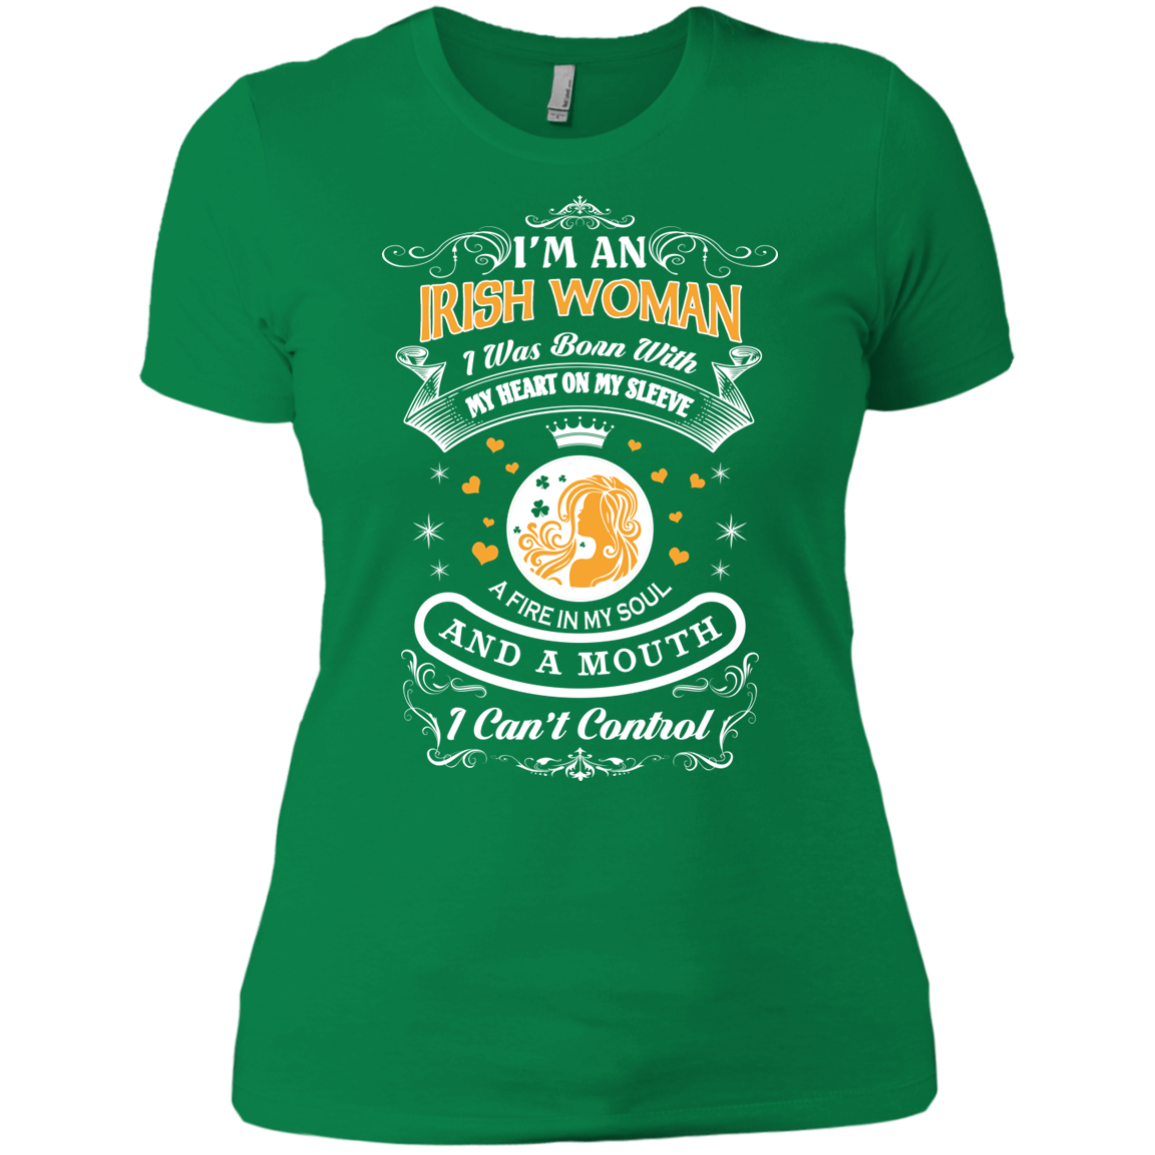 Irish Woman St Patrick's Day St Patricks Day Shirt Hoodies Clothing For Women